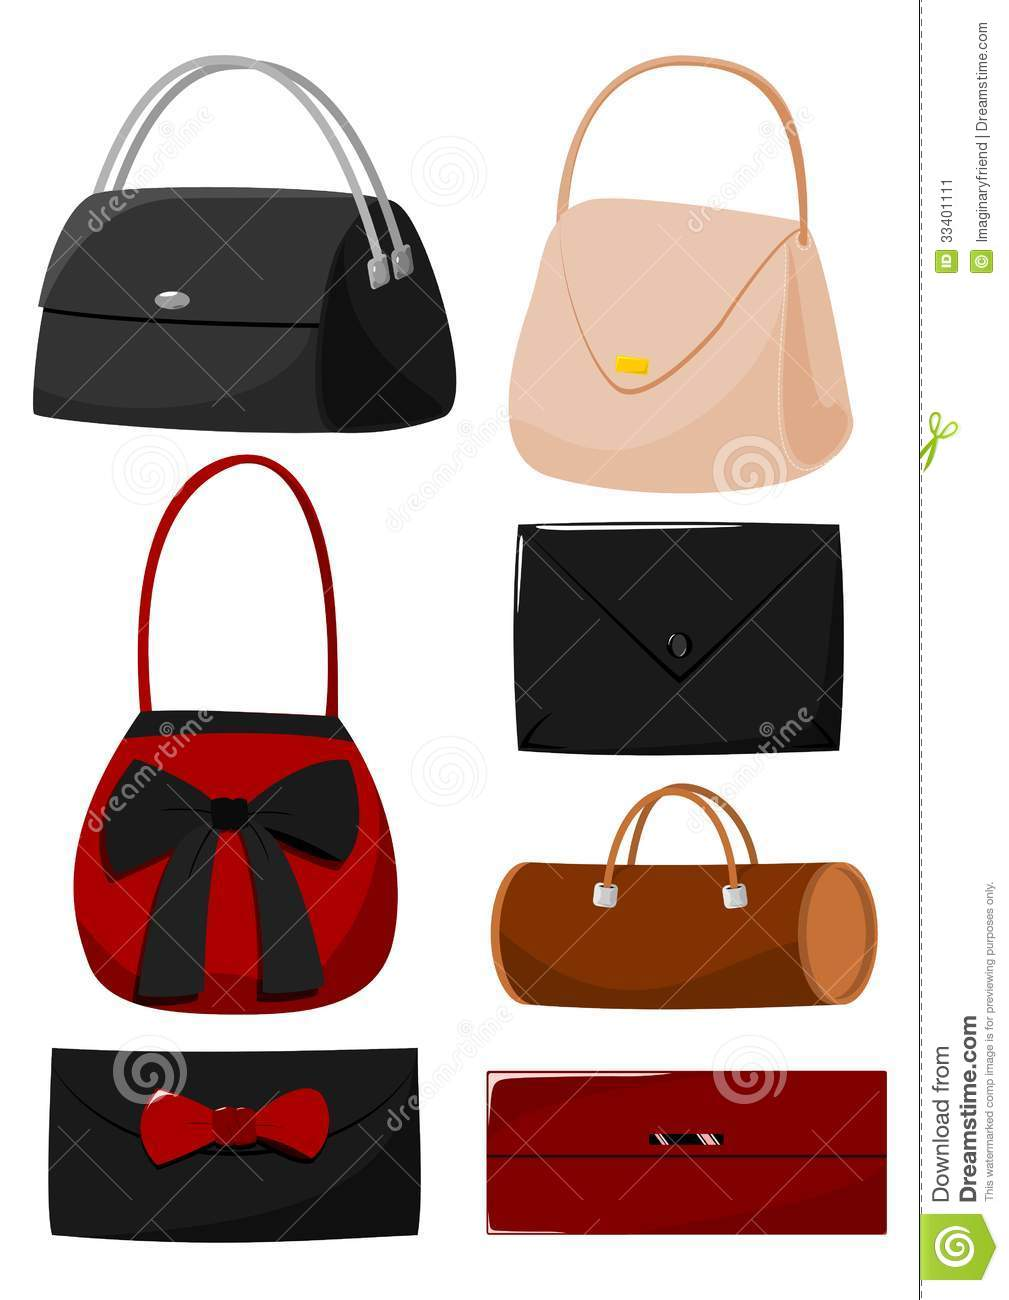 Cartoon Bags Stock Image - Image: 33401111